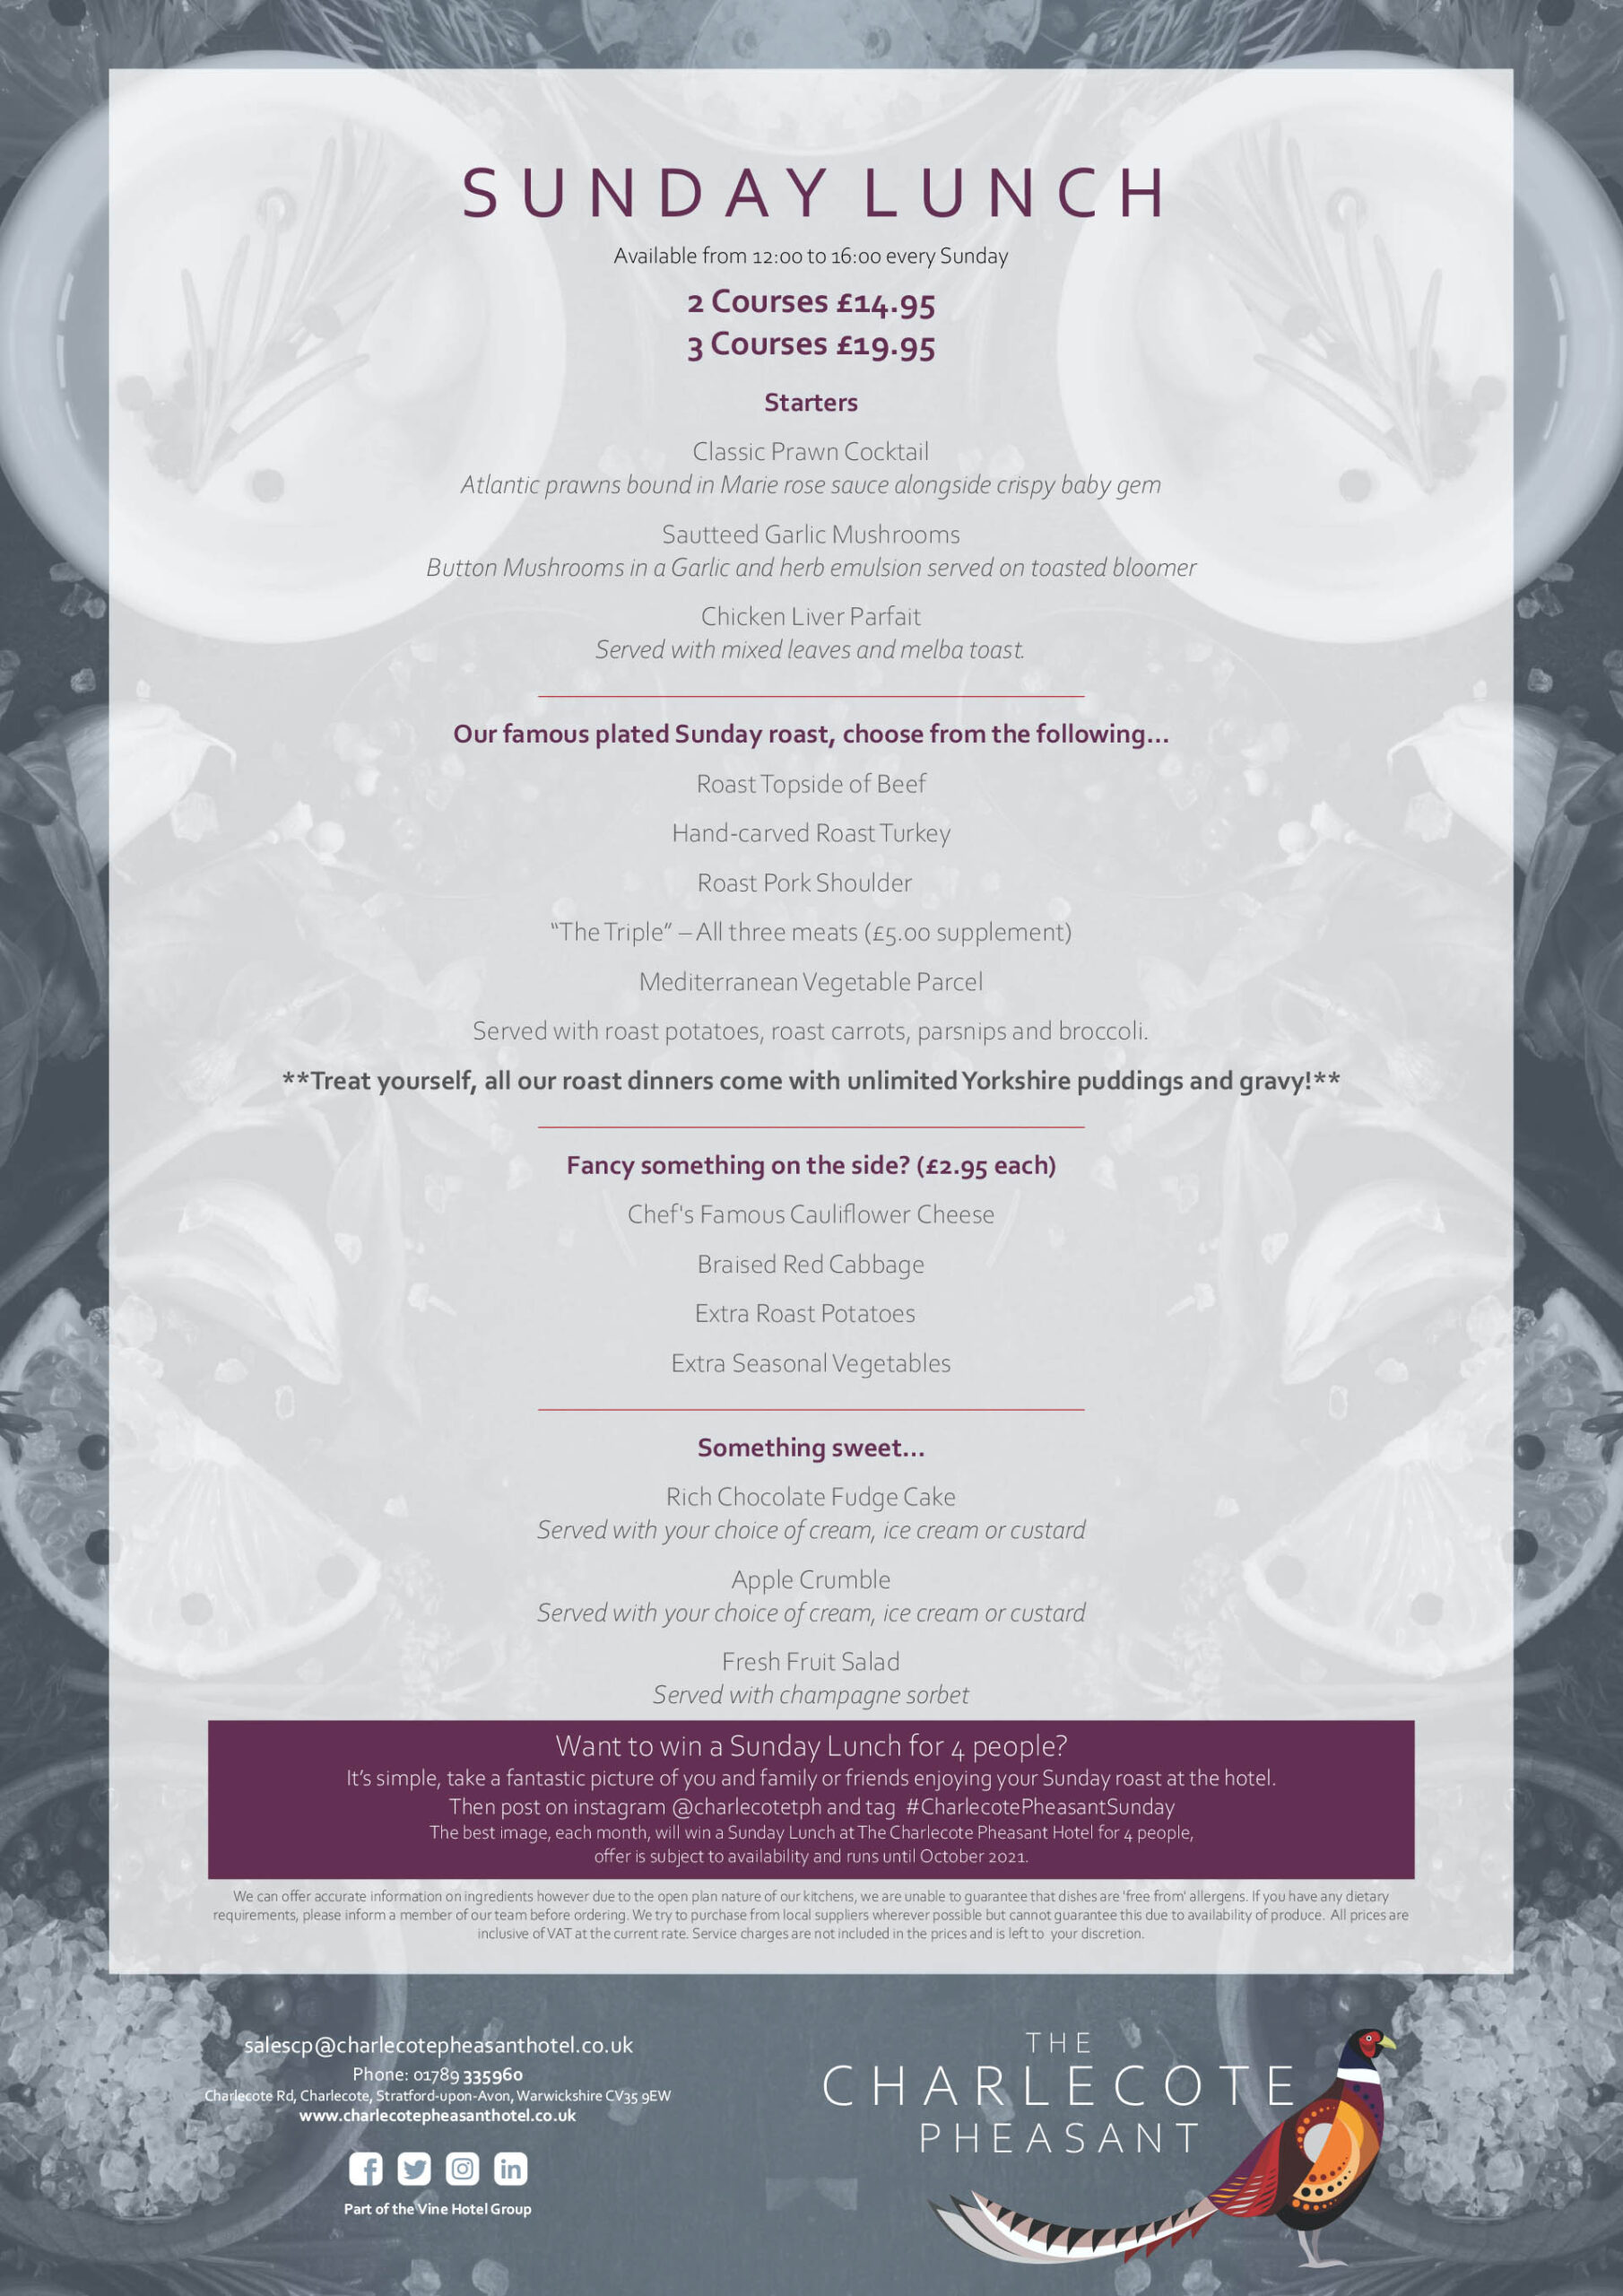 The Charlecote Pheasant Hotel Sunday Lunch Menu.cdr